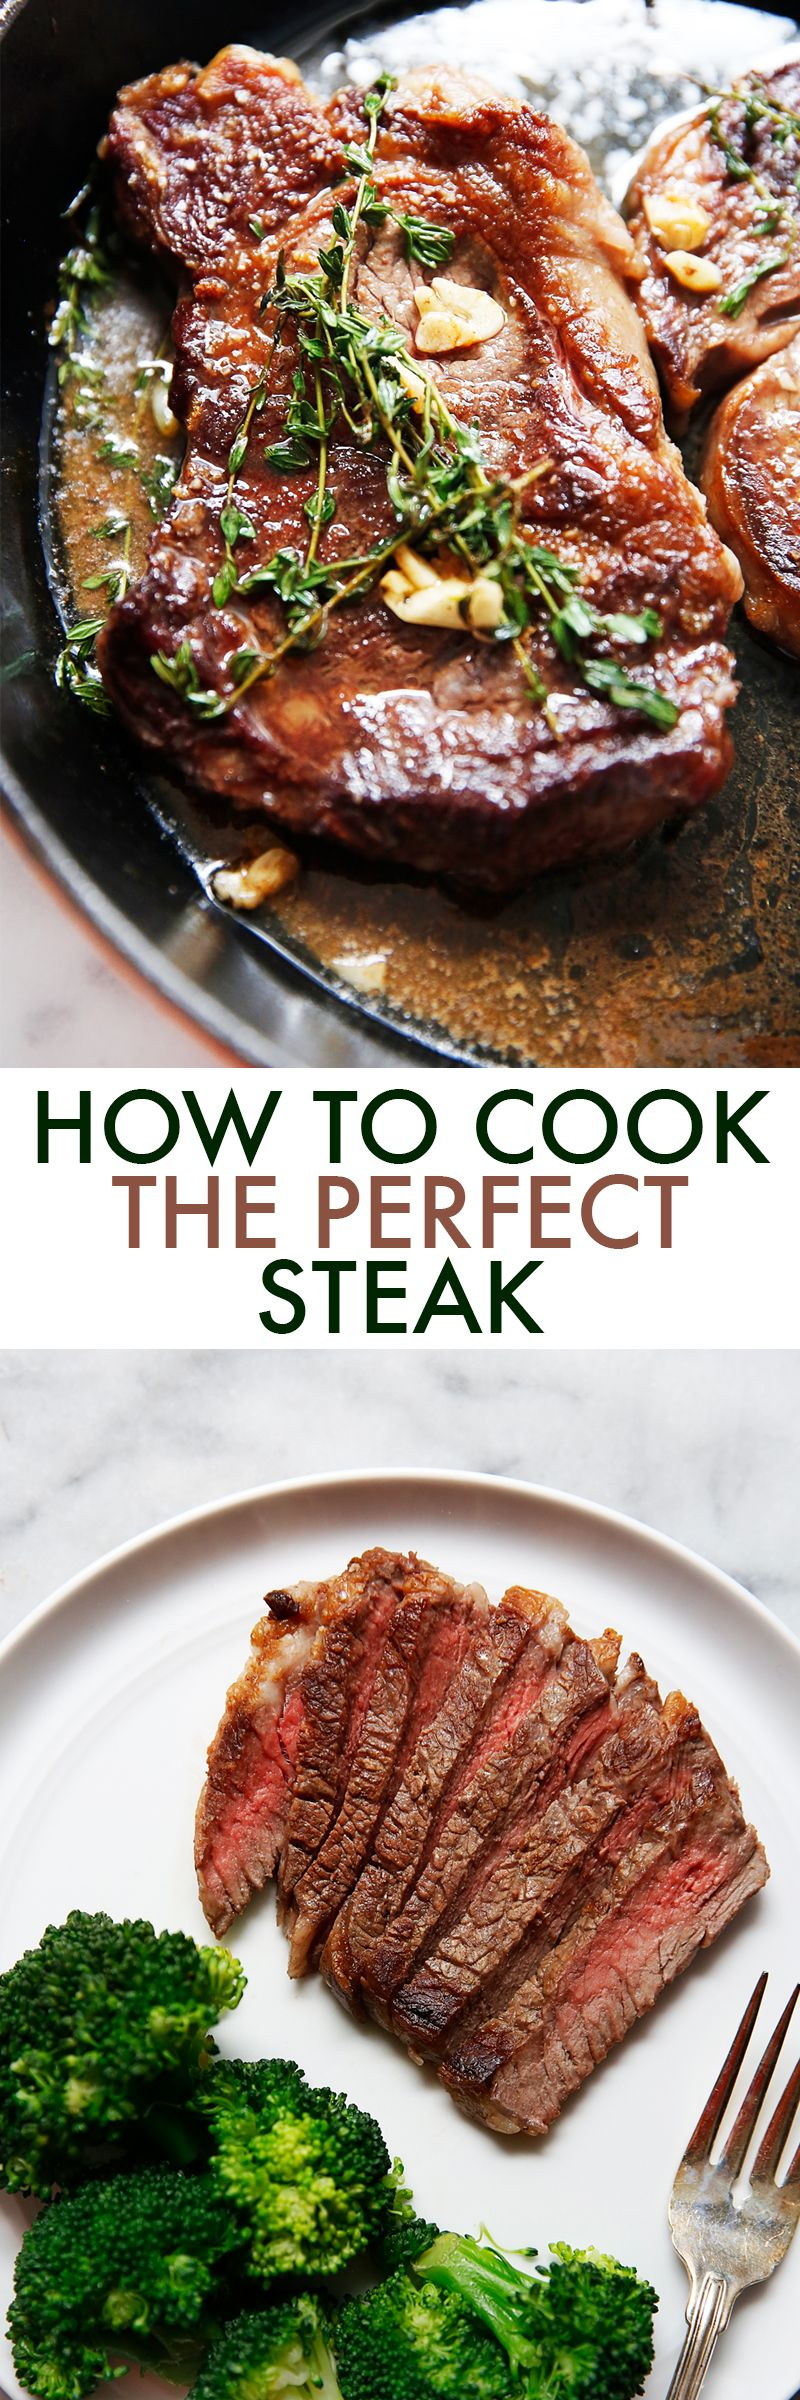 How To Sear A Steak Lexi S Clean Kitchen Recipe Cooking The Perfect Steak Steak Dinner Beef Recipes